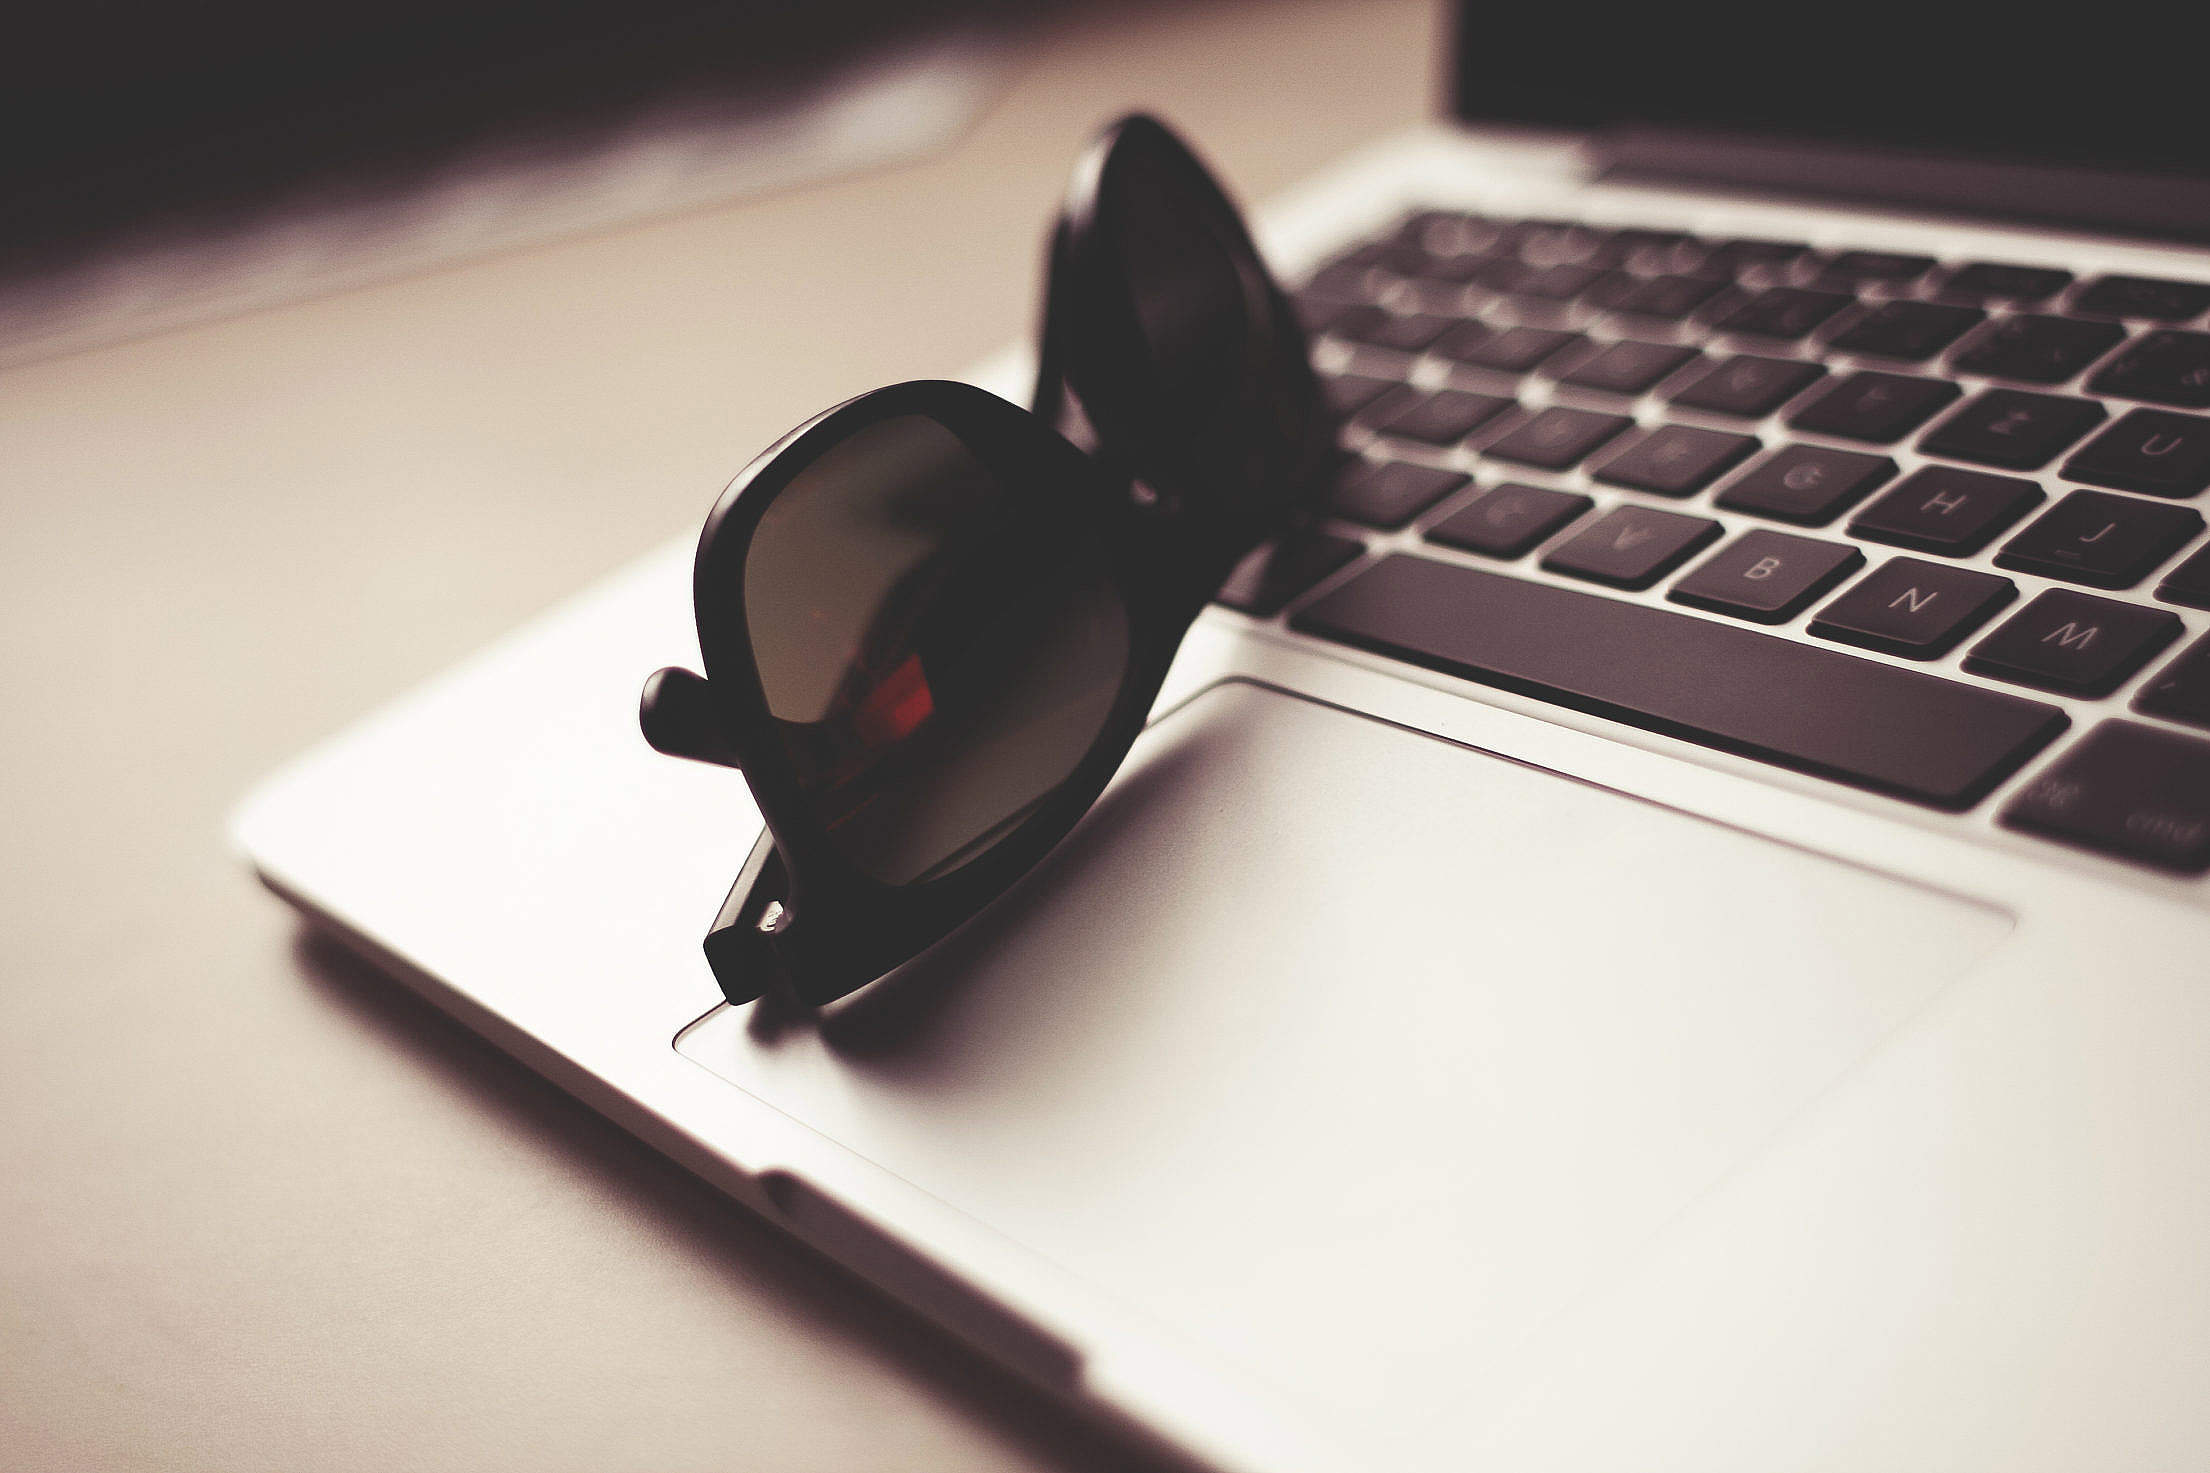 Style Sunglasses with MacBook Free Stock Photo